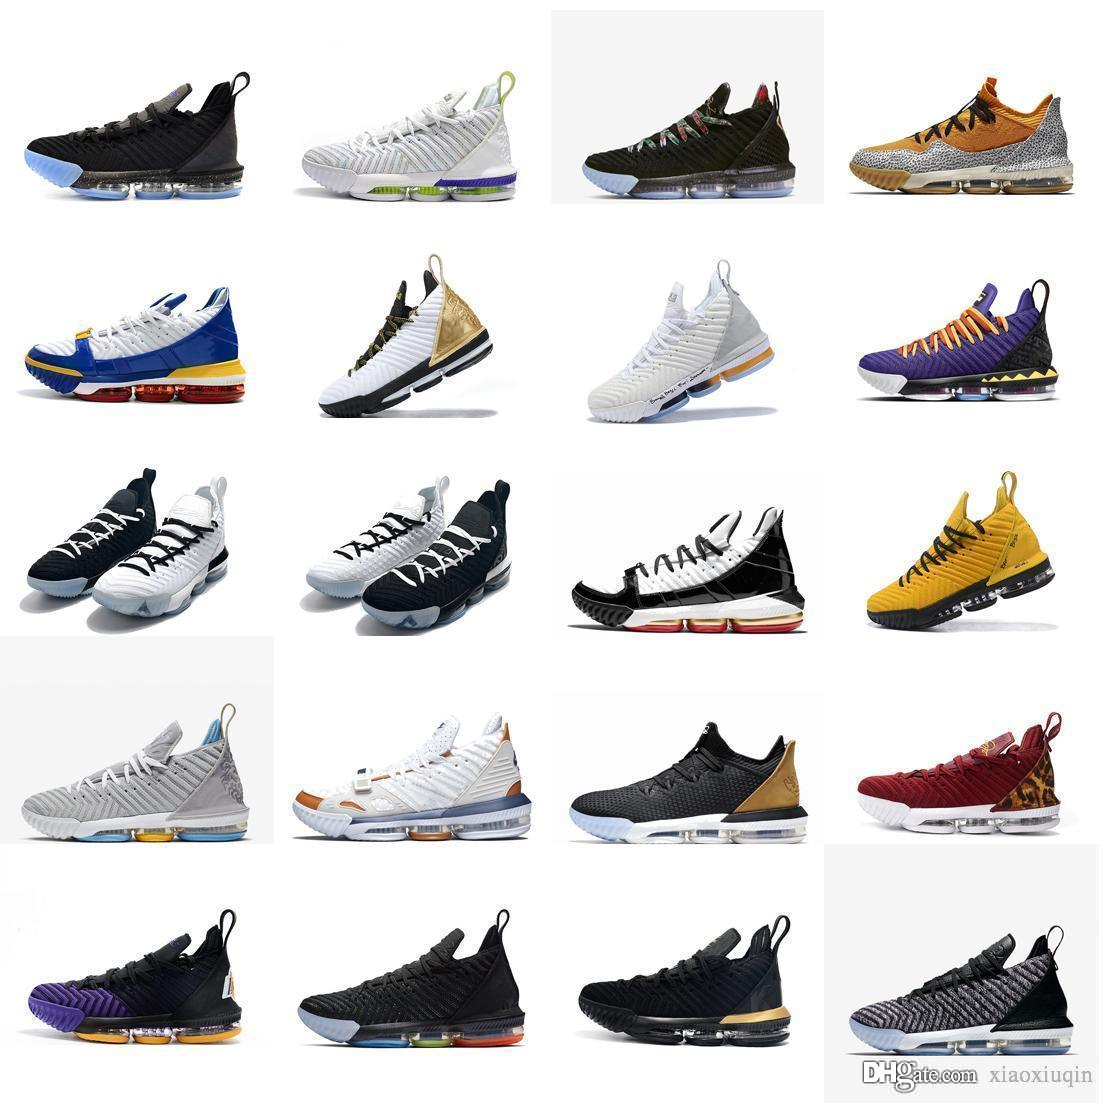 993a857e5f Womens lebron 16 basketball shoes Martin Remix Red Black White Bred  SuperBron boys girls youth kids lebrons xvi low sneakers tennis wholesal